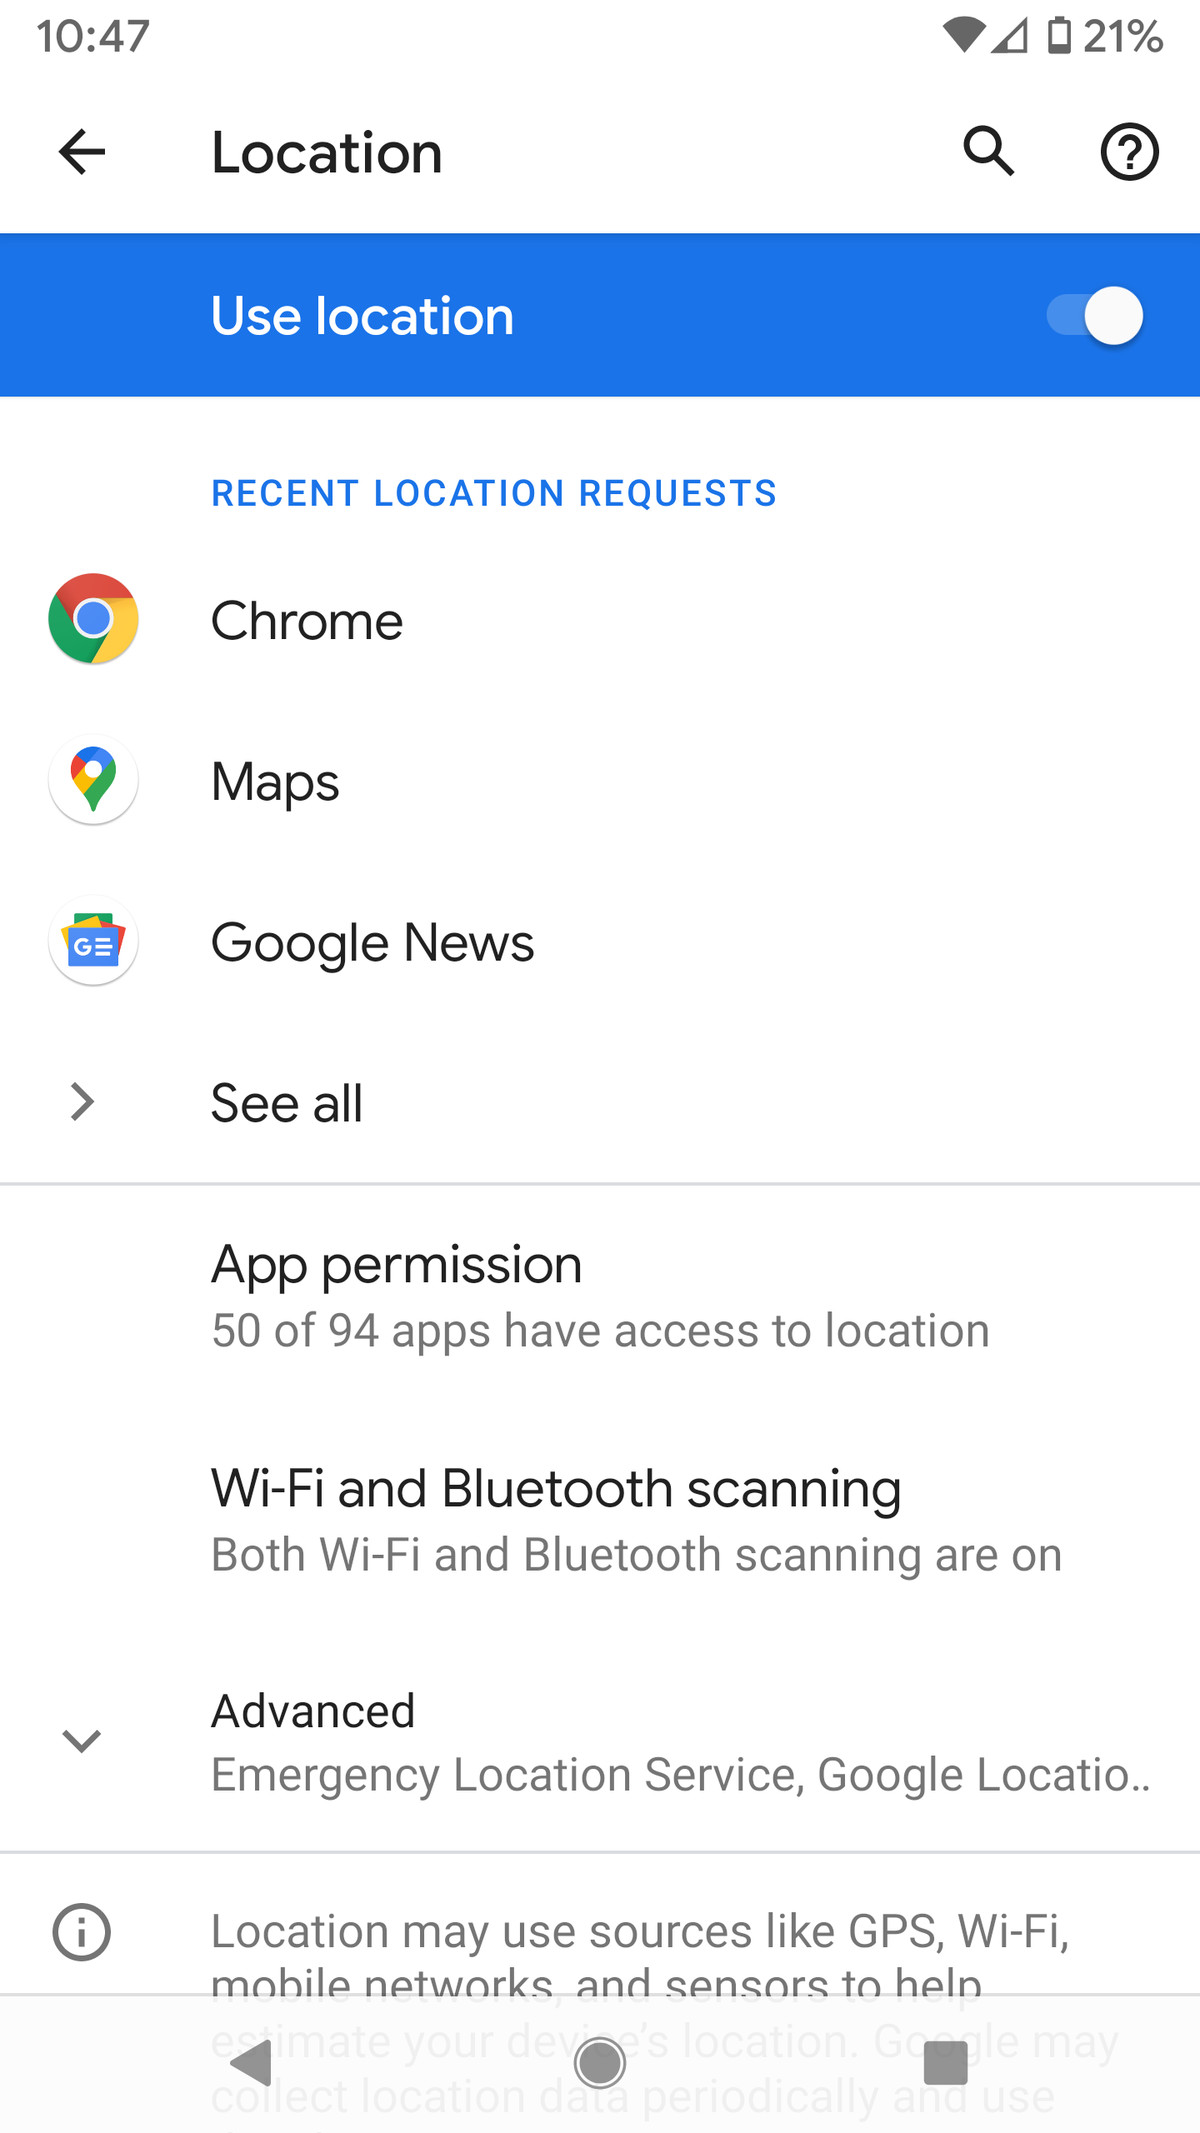 Once Location is enabled, you can tweak the settings of your various apps.